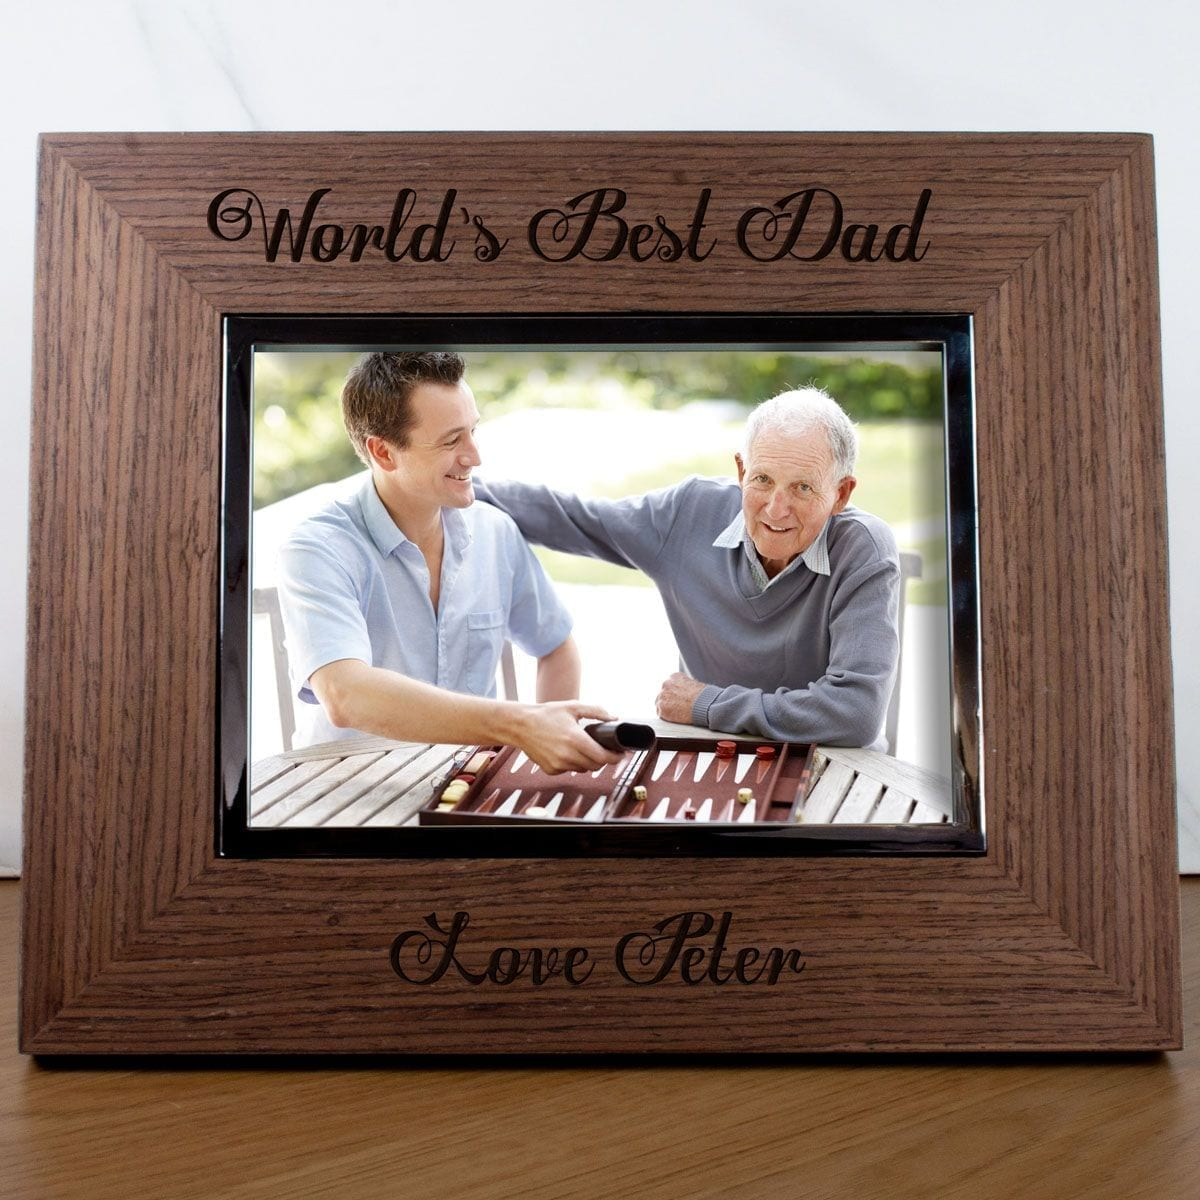 best-dad-personalised-walnut-engraved-photo-frame-2755-p.jpg